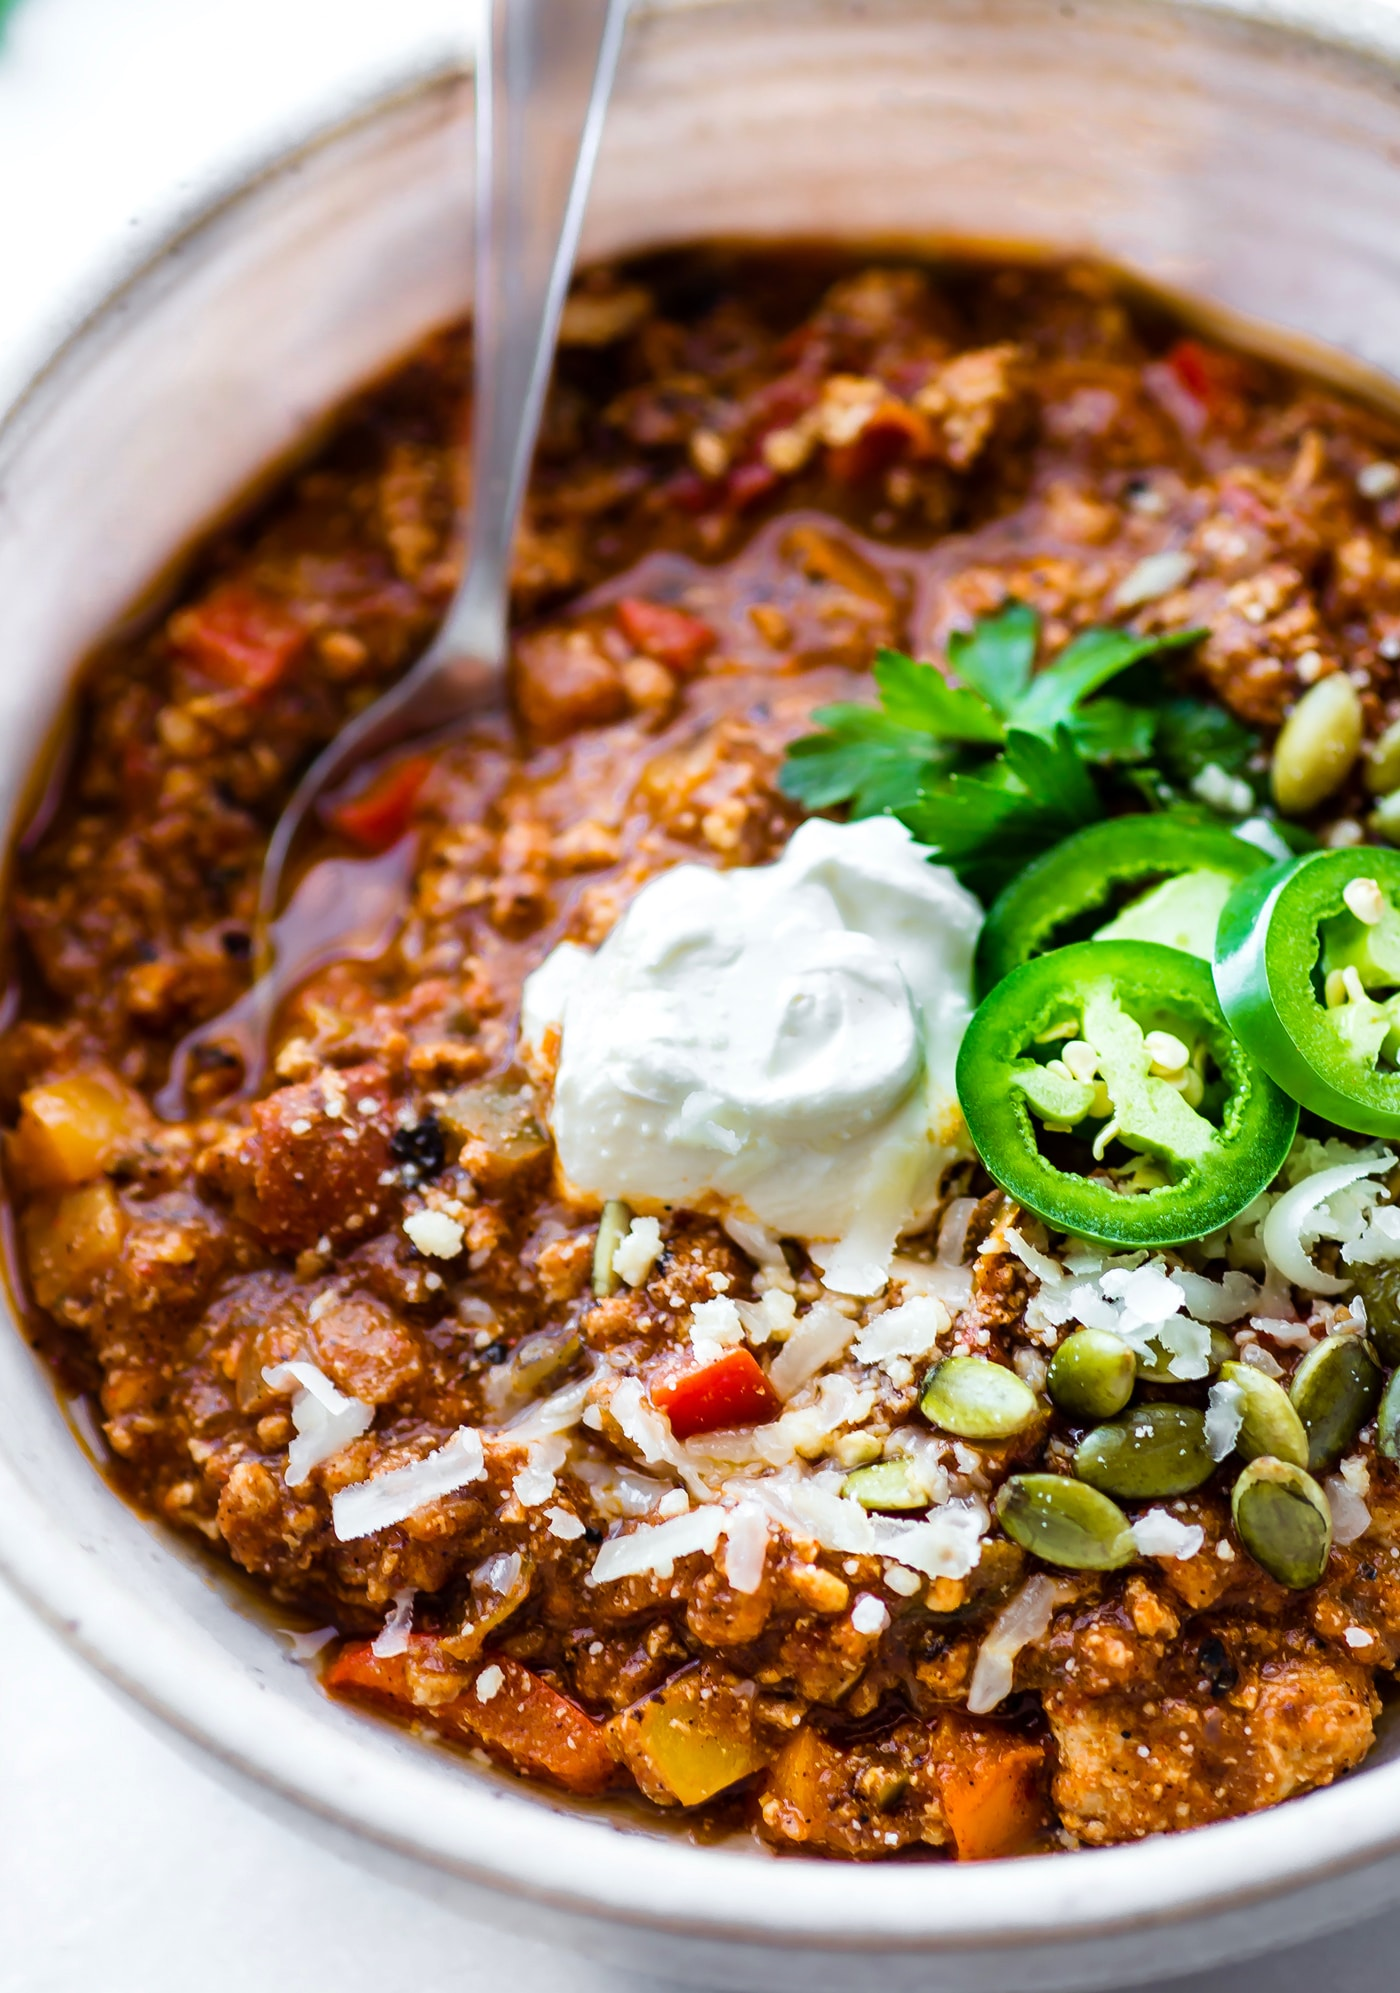 sweet potato chili topped with slices of jalapeno, shredded cheese and sour cream